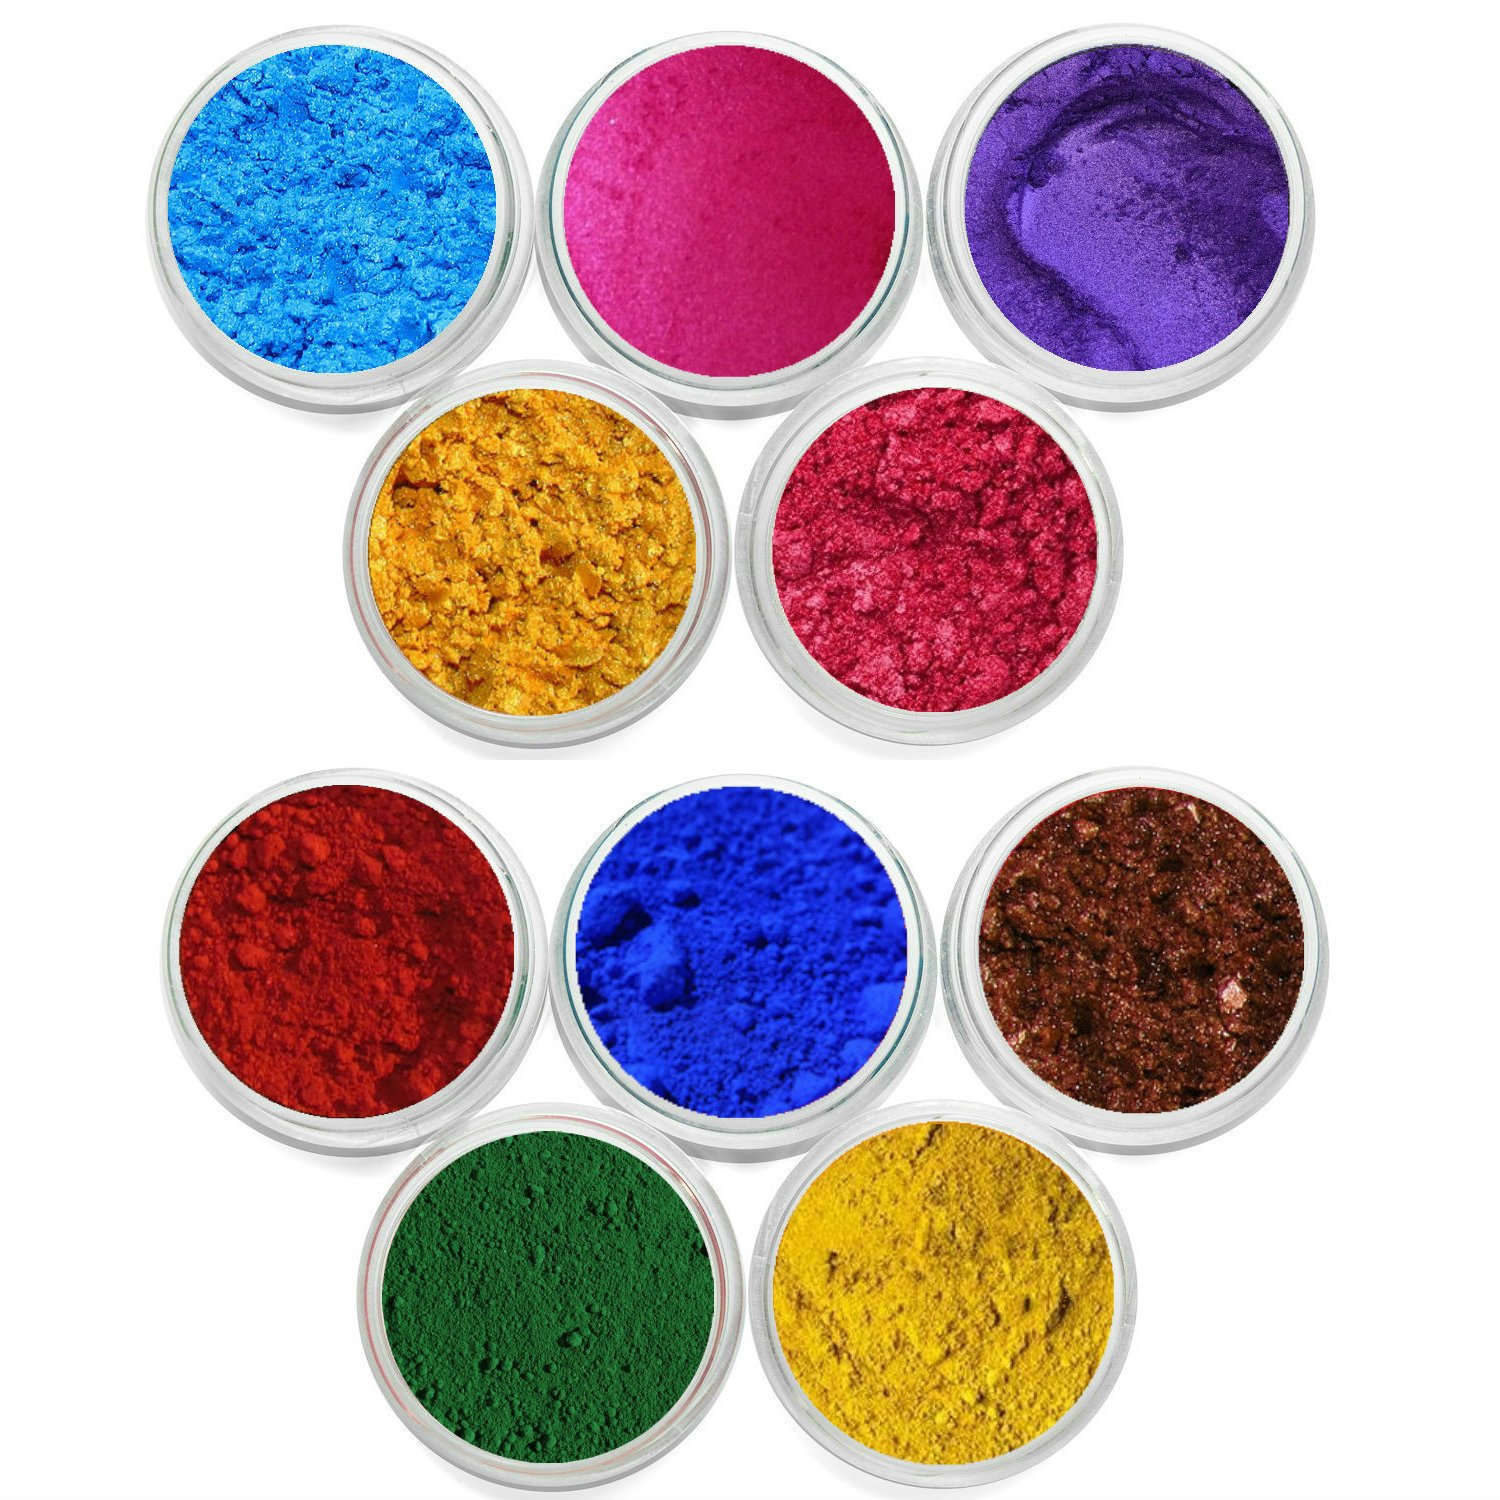 10 Piece Mineral Makeup Soap Dye Shimmer & Matte Bright Pigment Cosmetic Grade Soap Colorant DIY KIT Soap Making Color Each Color Is Packed In 3 Gram Size Jar Myo 10 Piece Set # 1 & 2